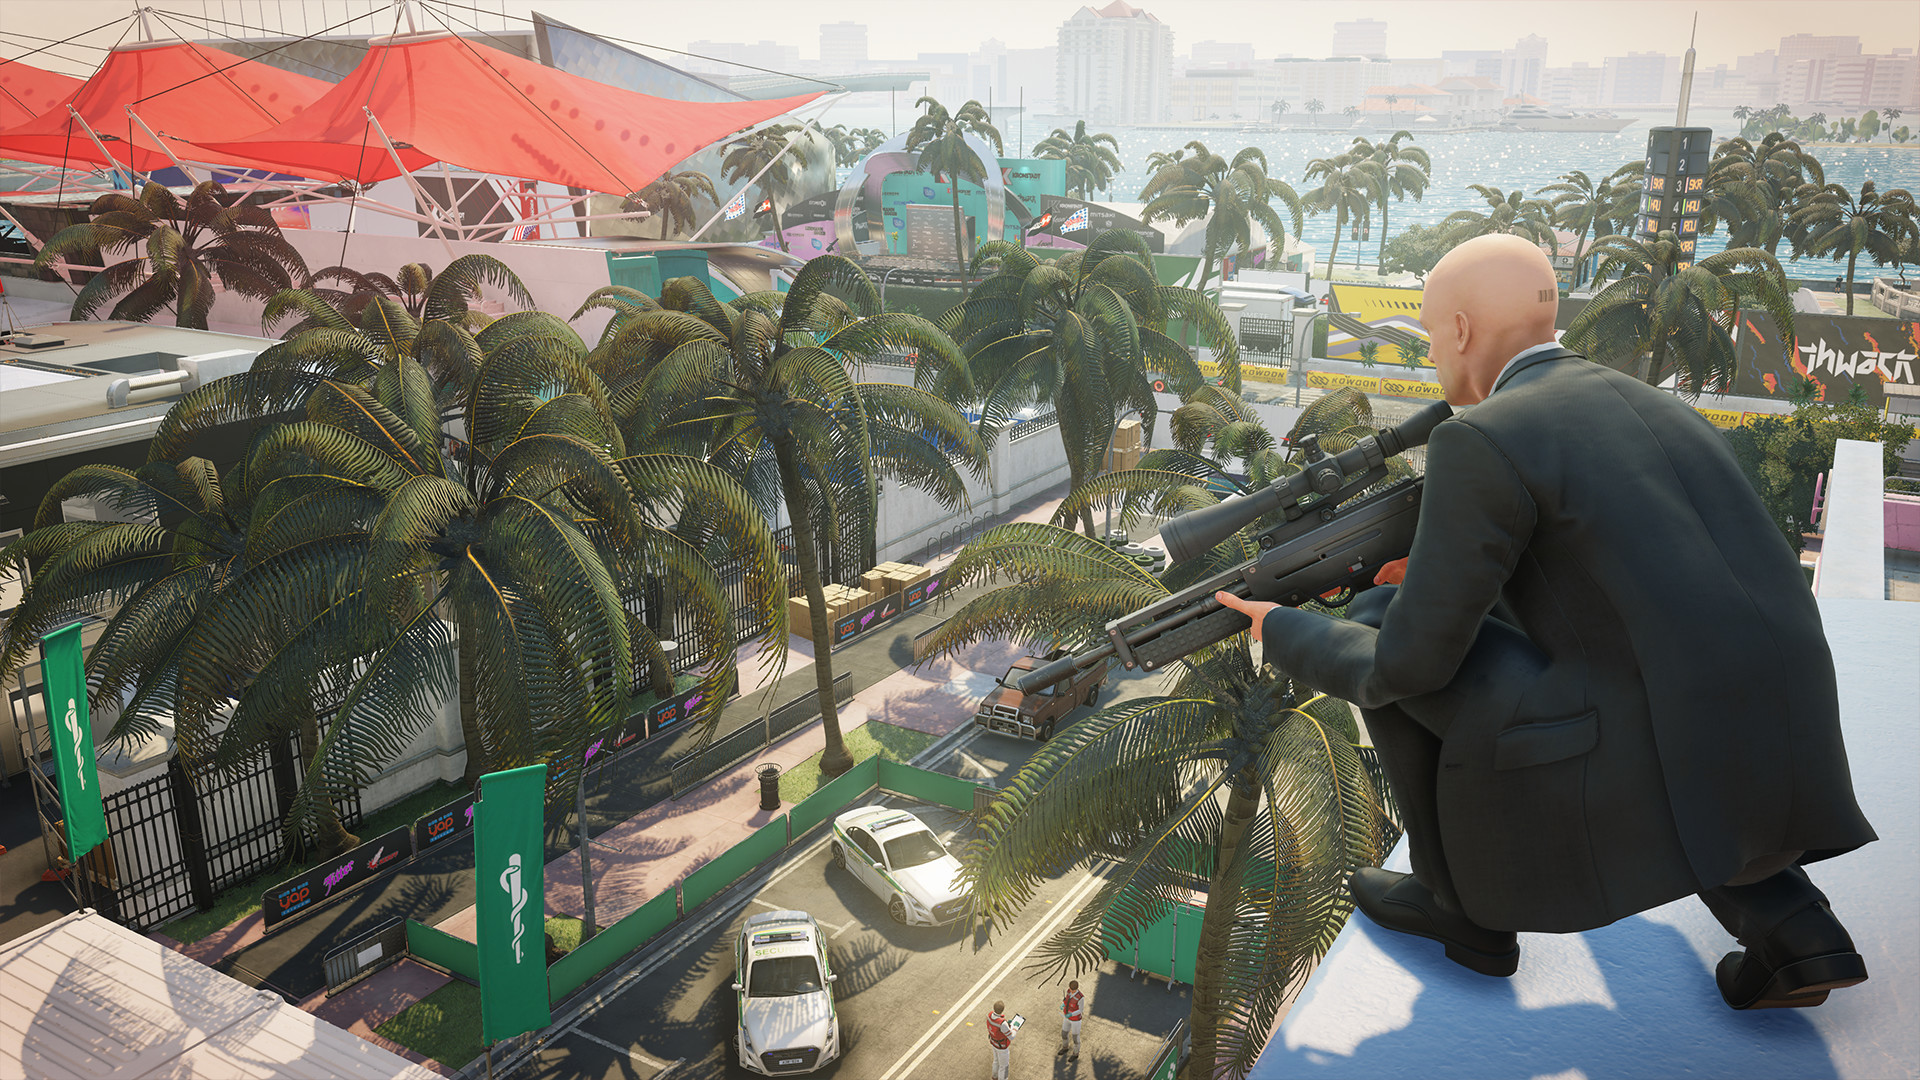 Hitman 2 Collector's Edition Comes With Extra Missions, Concussive Rubber Duck